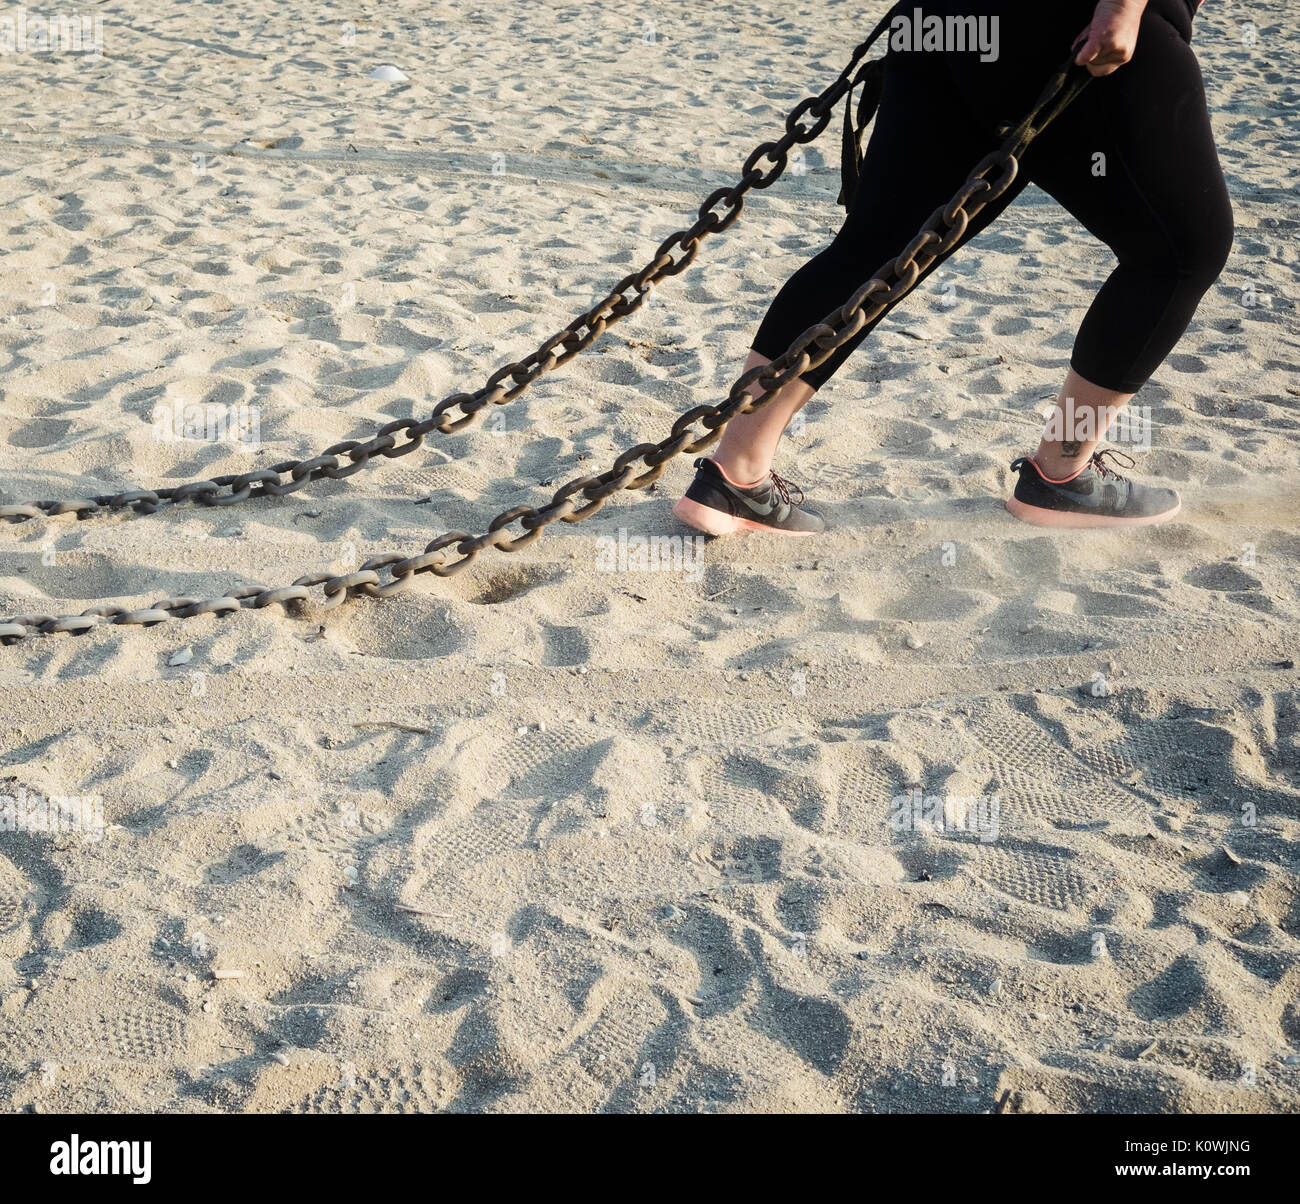 A woman drags a metal chain as part of a bootcamp fitness session on Falmouth's Gyllyngvase Beach. Stock Photo